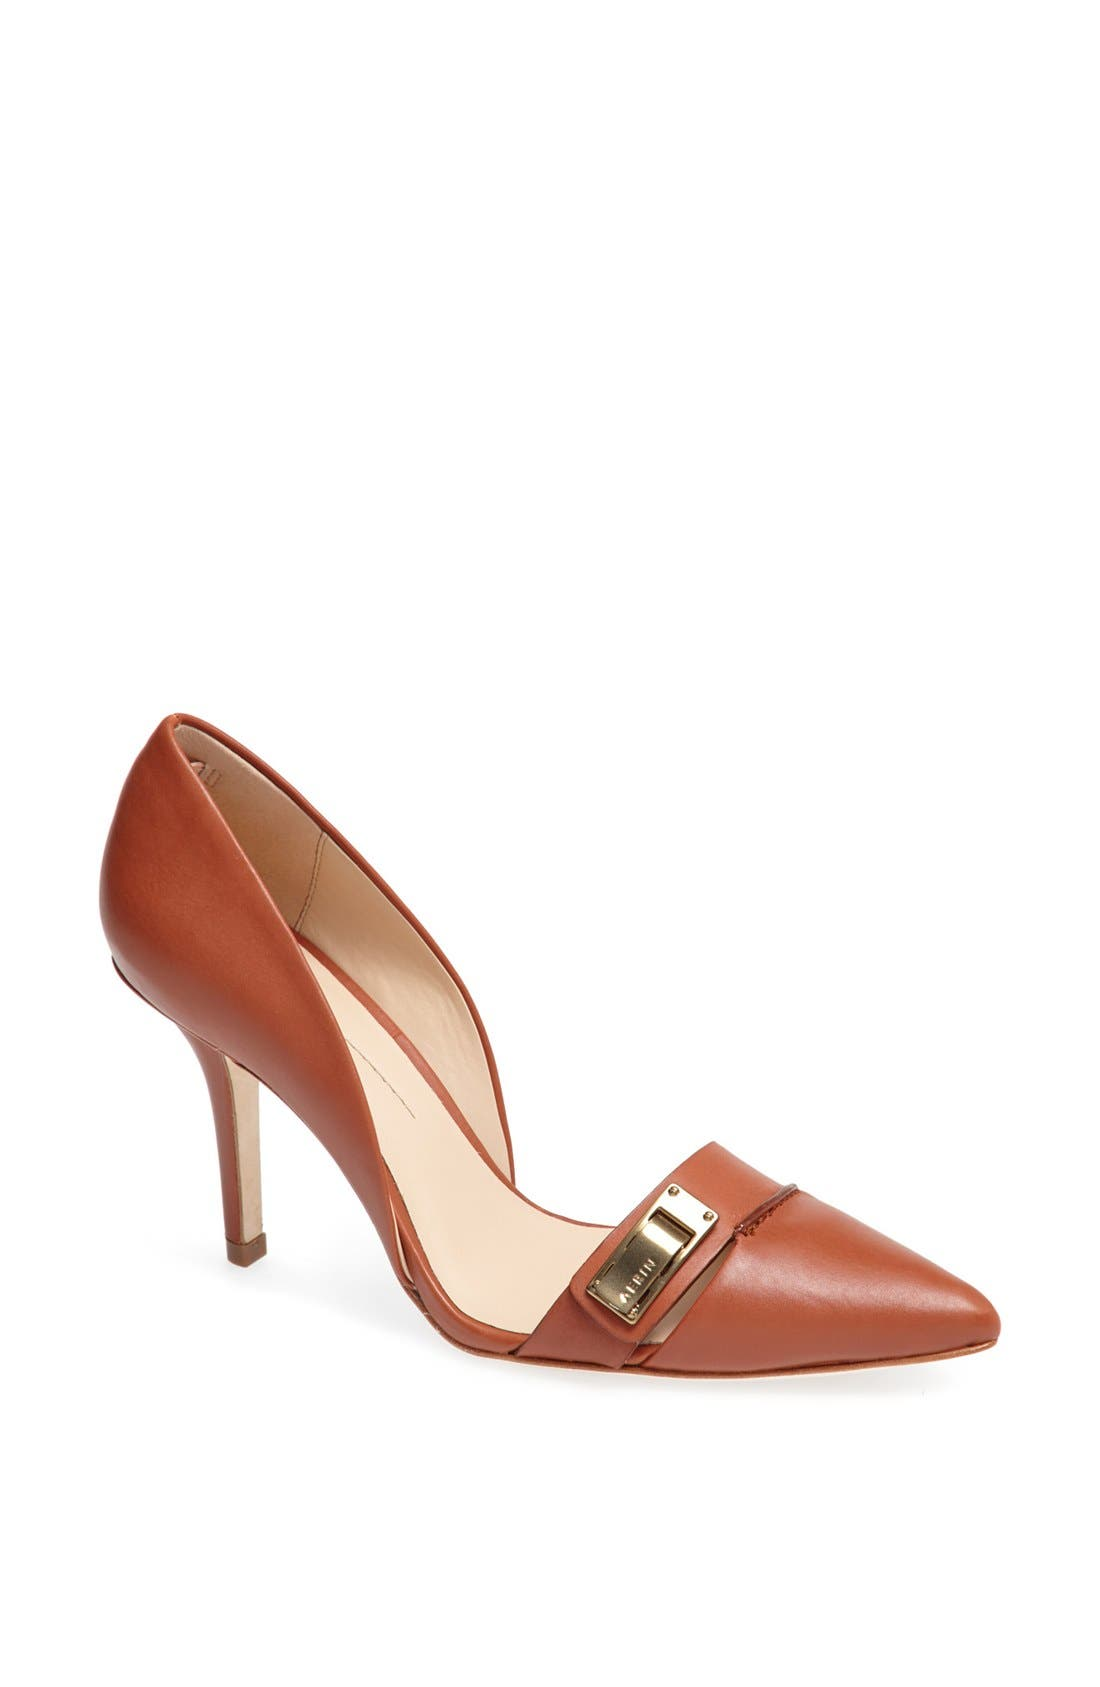 Main Image - Aerin 'Fatima' Leather Pointy Toe Pump